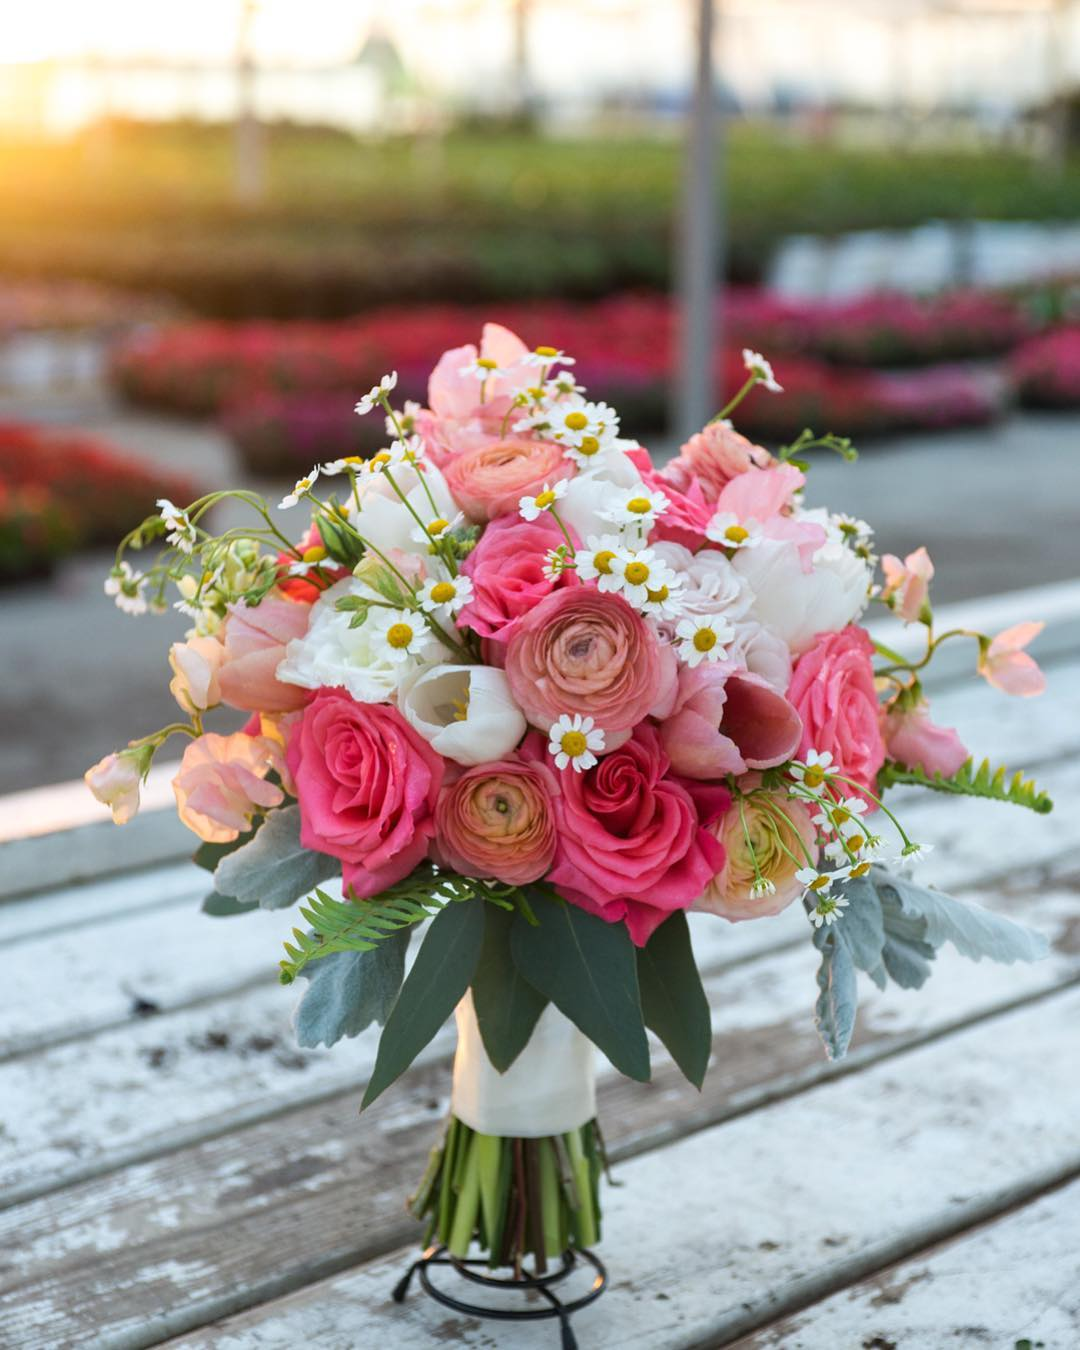 Capable - Sweet Peas Flower Farm offers the skills of experienced designers who are ready to harvest and incorporate the freshest flowers into your special event.